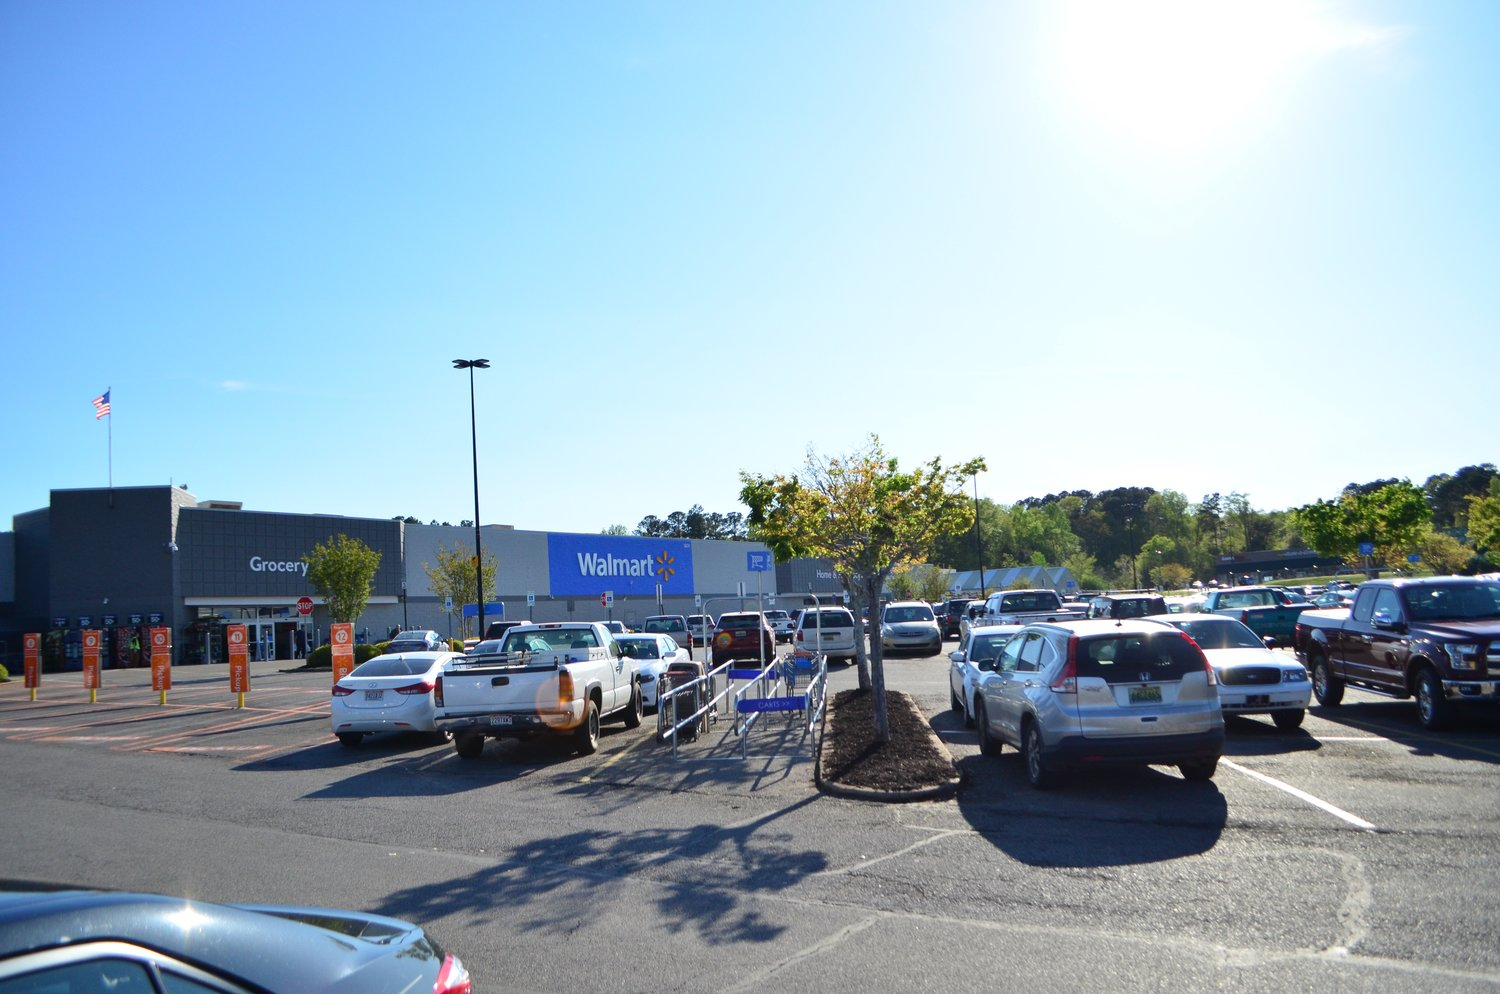 Jasper Walmart remained crowded Wednesday afternoon, as well as other large businesses, such as Home Depot.